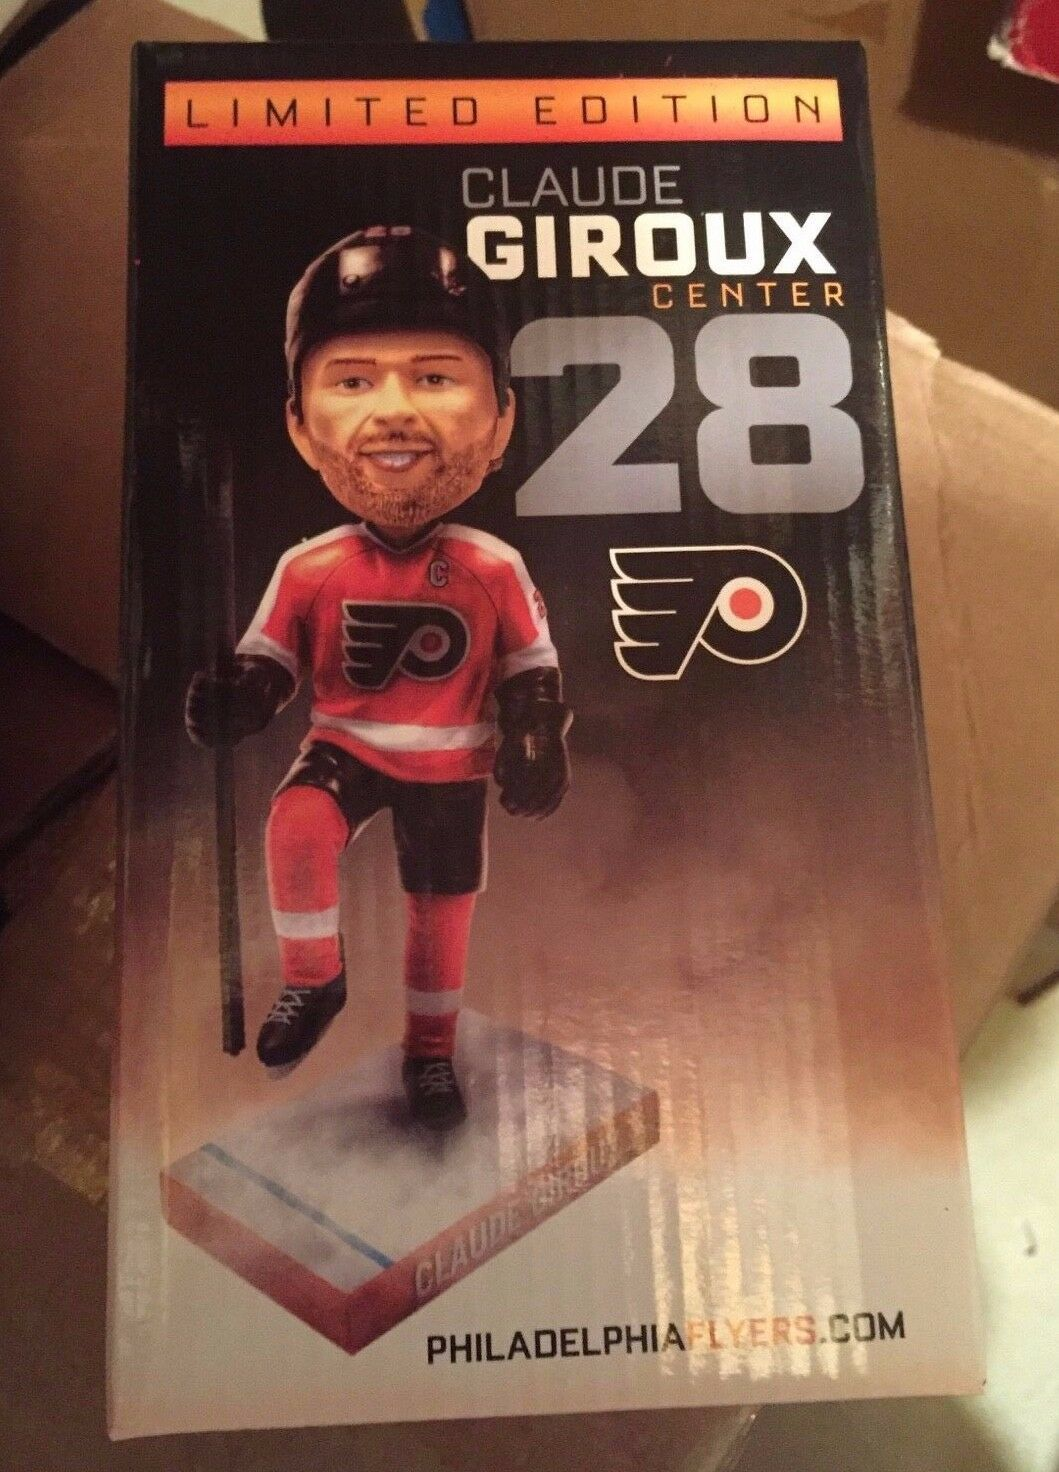 Primary image for NIB Claude Giroux Bobblehead Philadelphia Flyers LIMITED EDITION Center #28 BDA